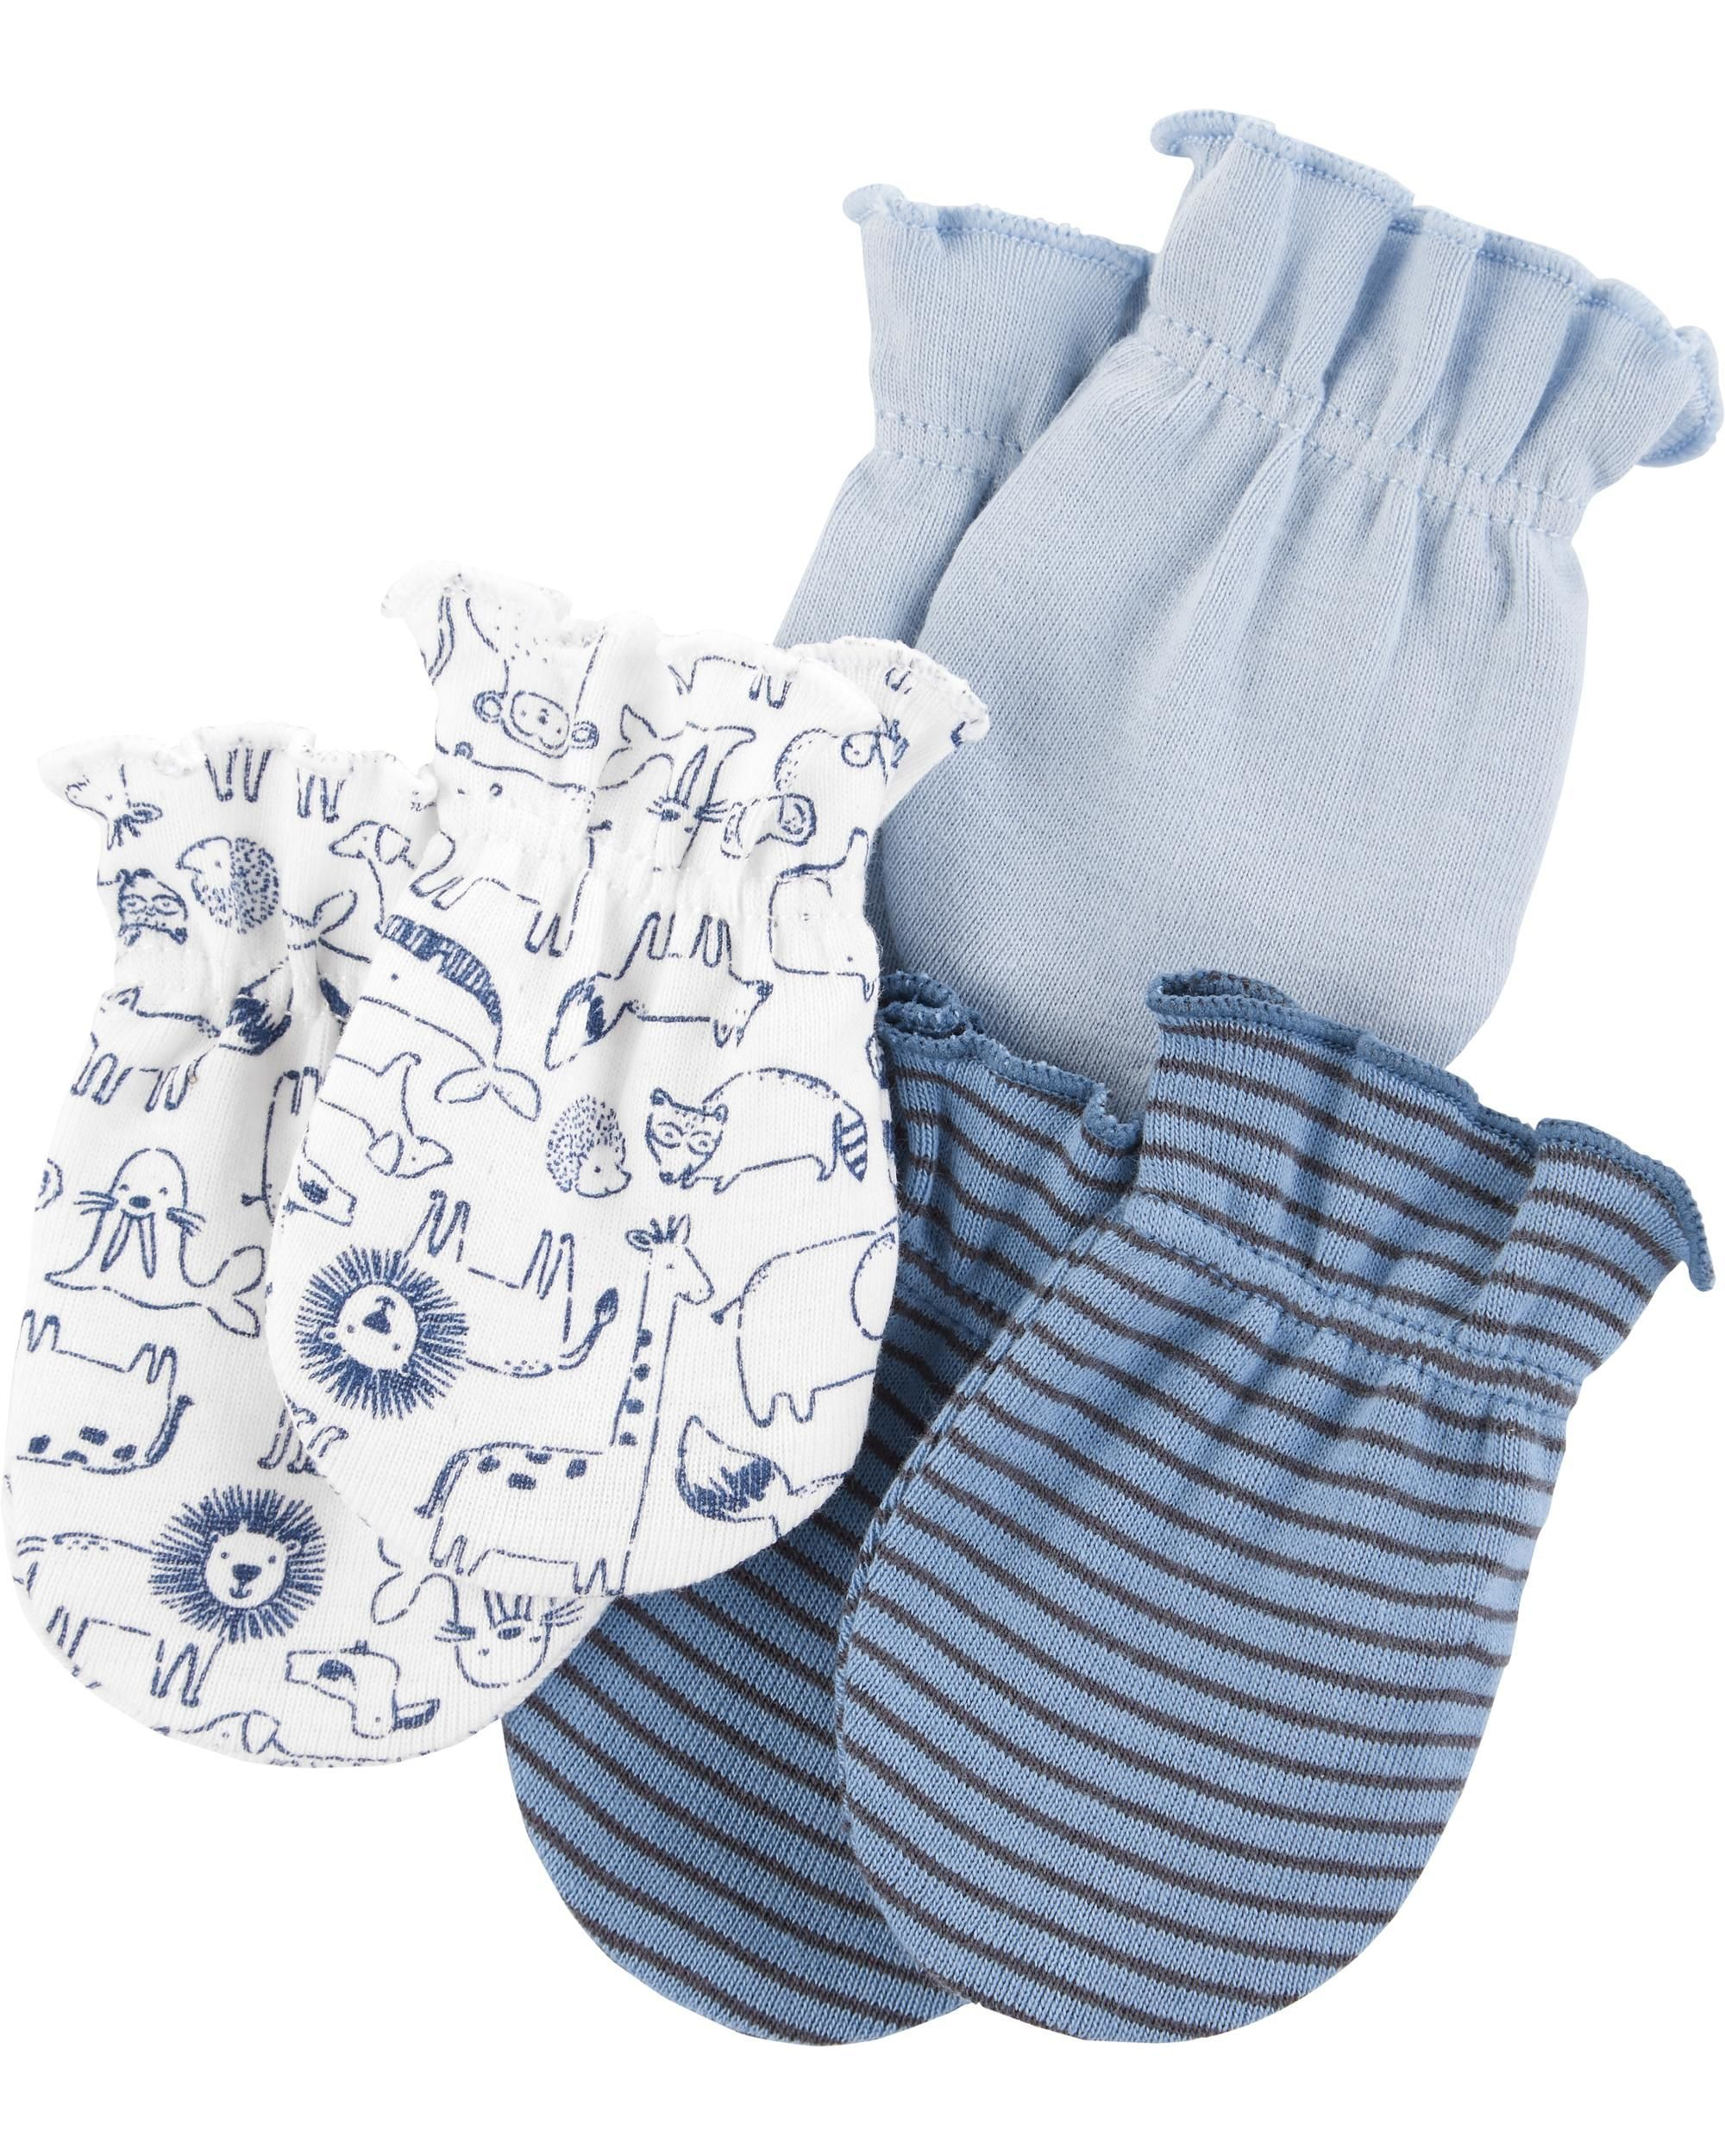 3 Pack Mittens Baby Boy Accessories Carters Baby Carters Baby Boys